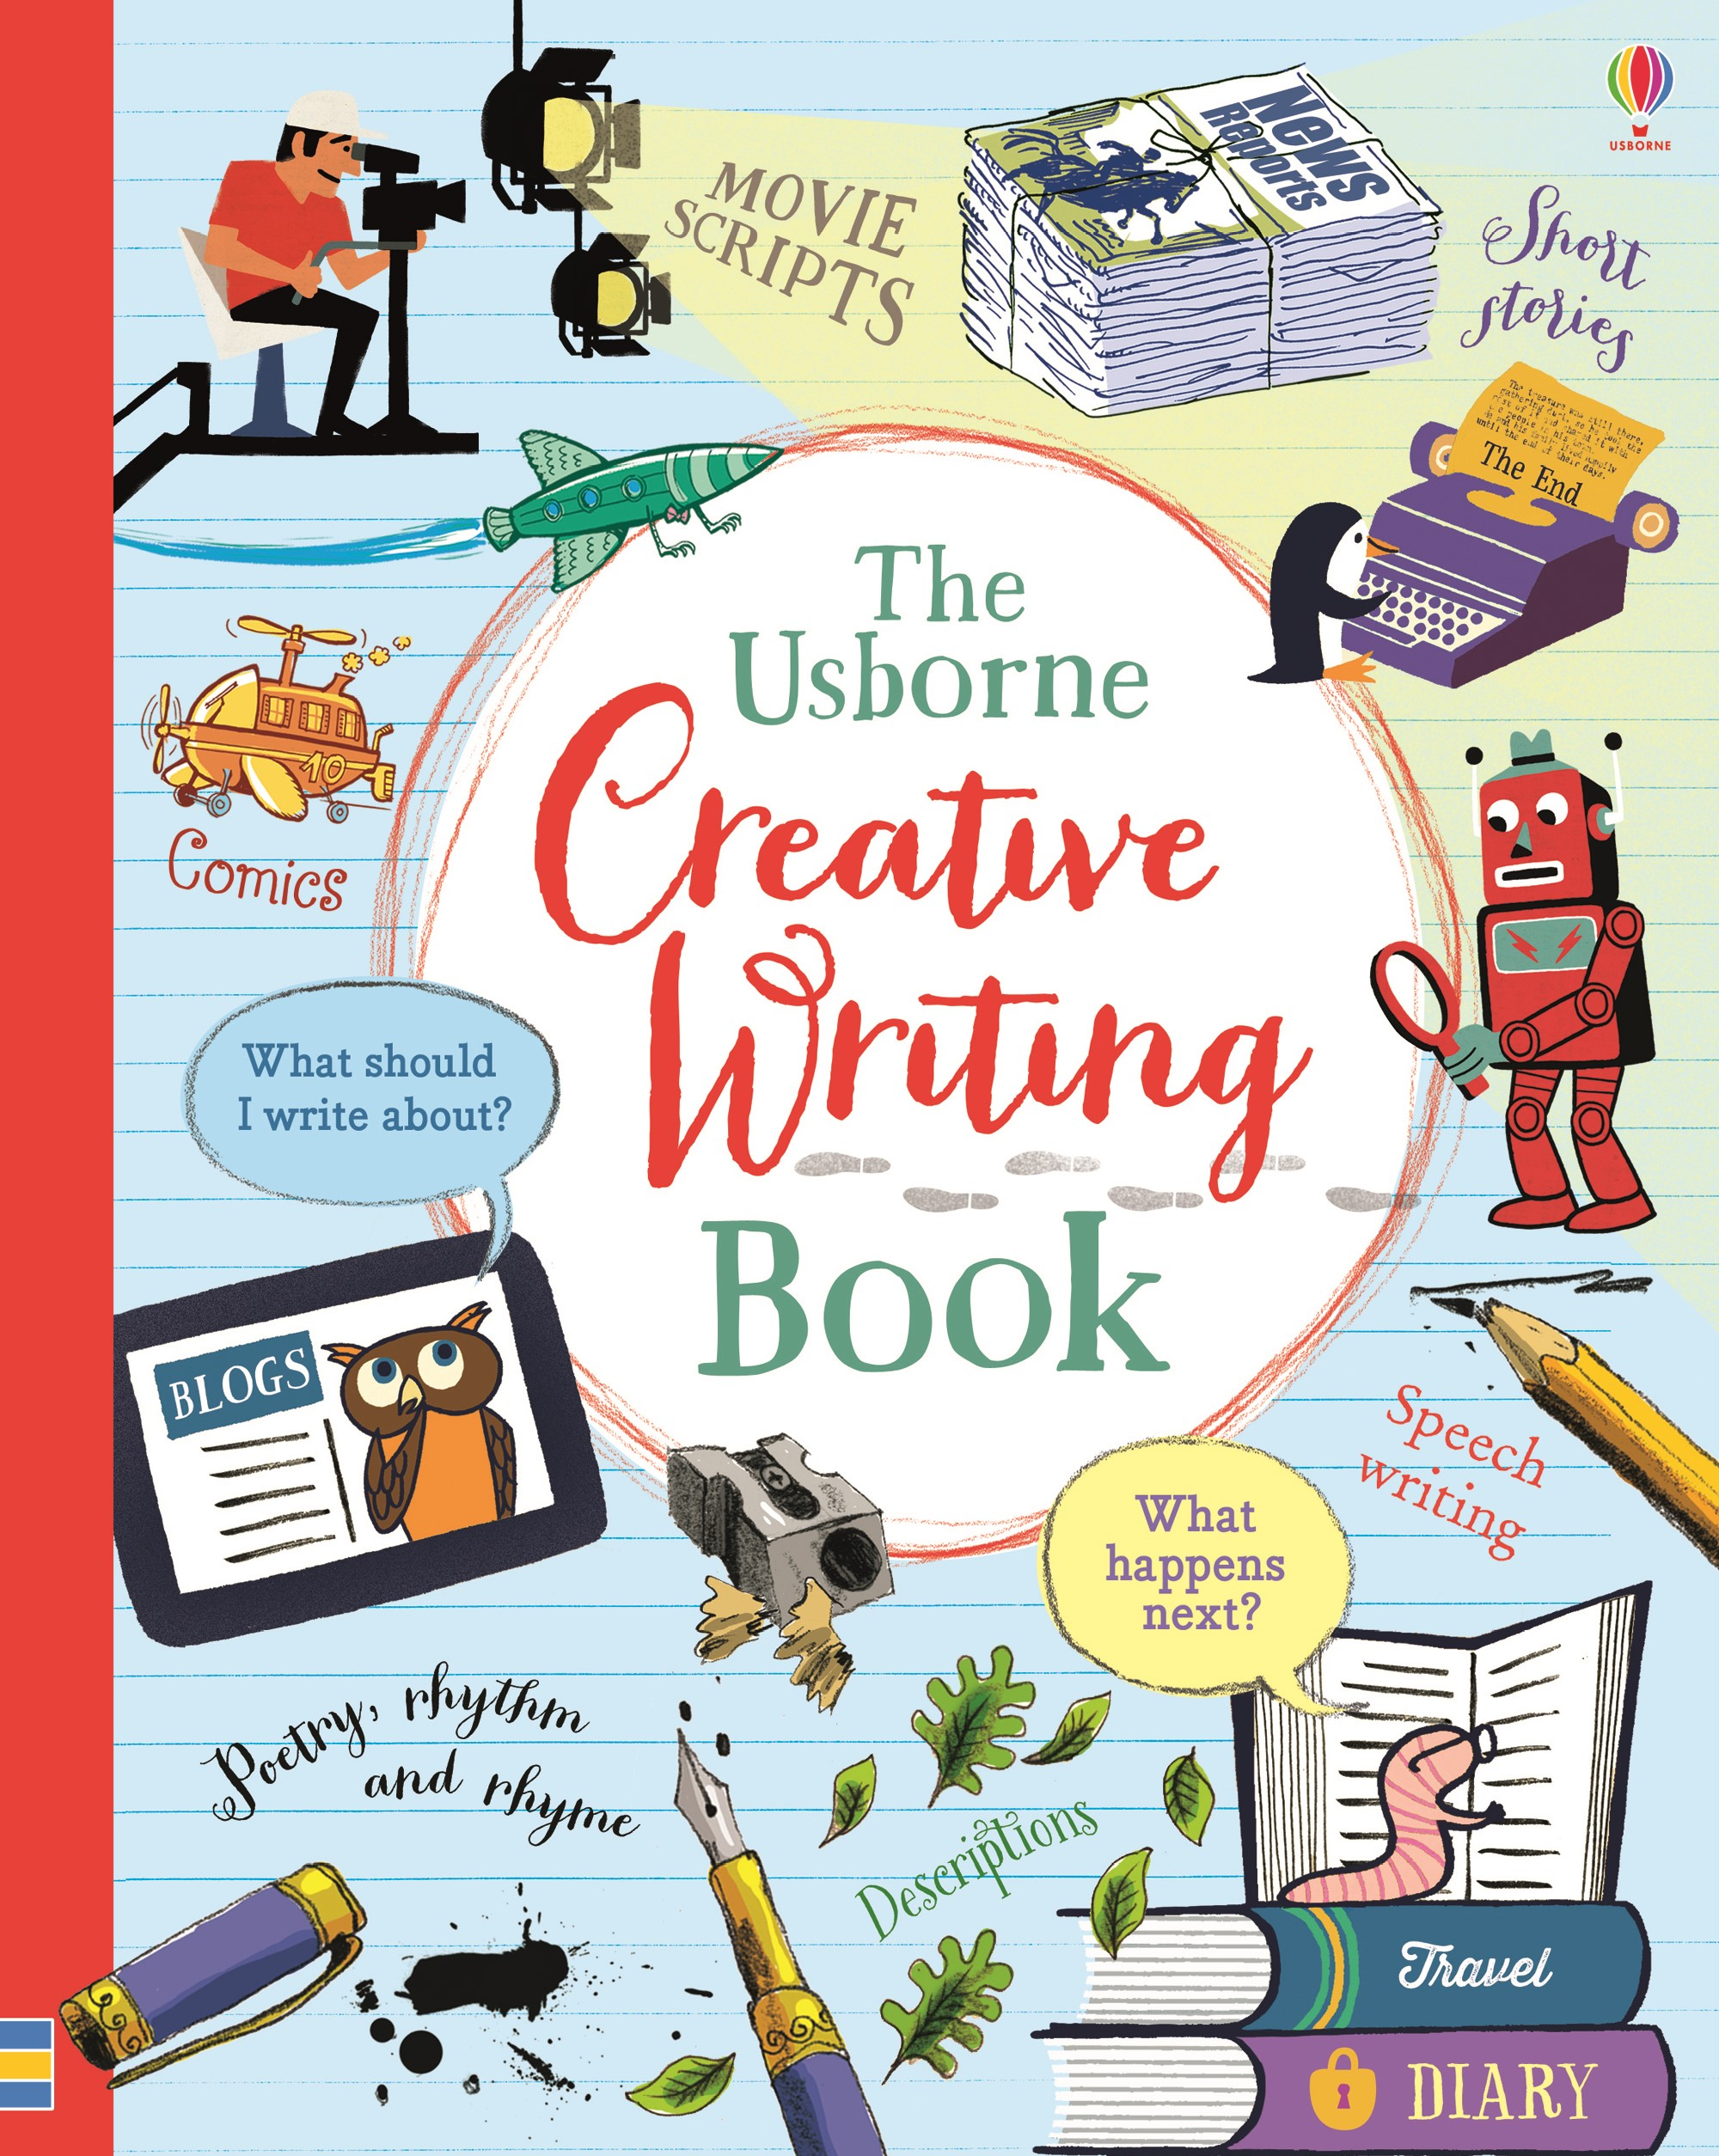 review on a creative writing book This is a book of essays on creative writing not a self-help book for aspiring  writers after reading the other reviews, i bought this book for inspiration i wasn't .